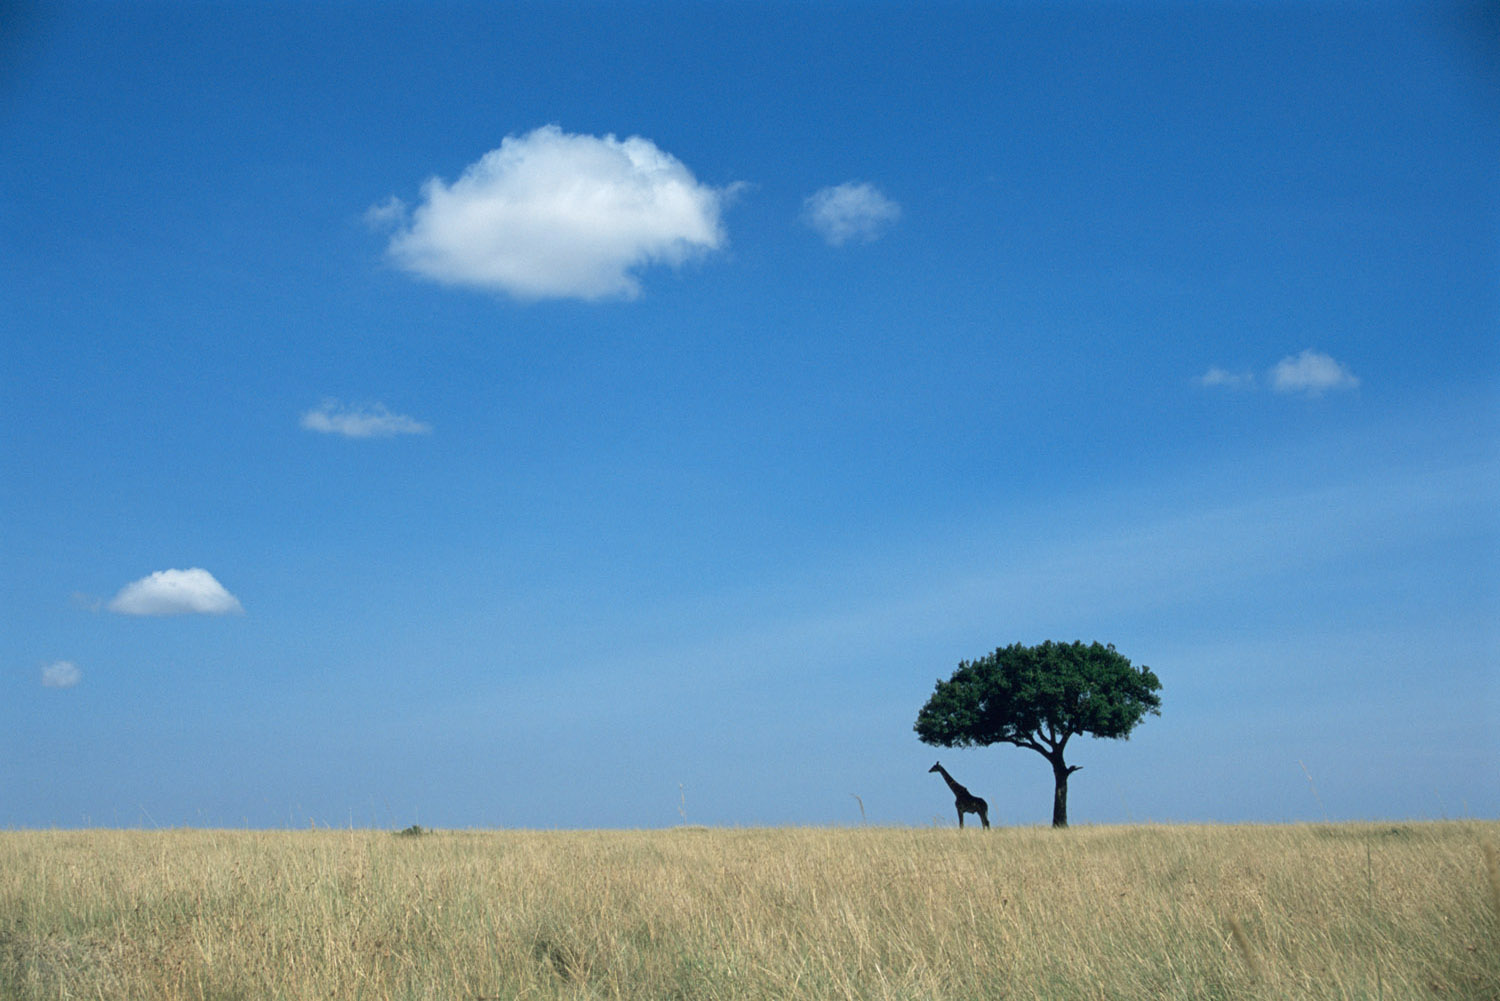 Maasai giraffe under lone tree, Masai Mara National Reserve, Kenya